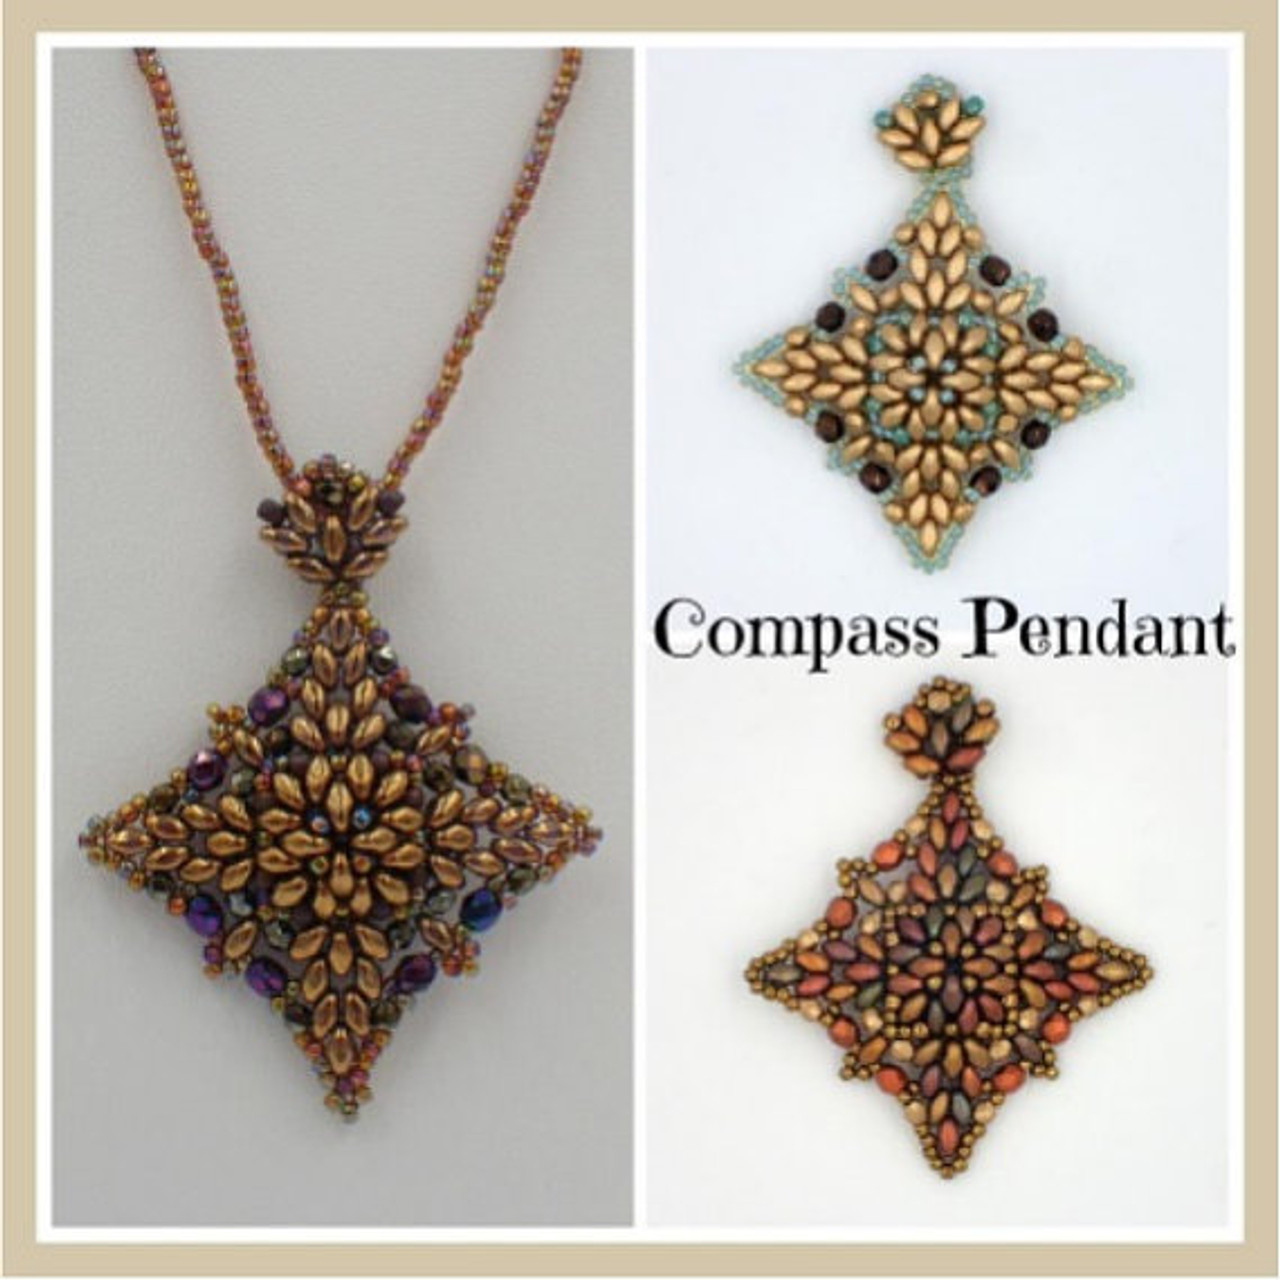 Compass Pendant Tutorial